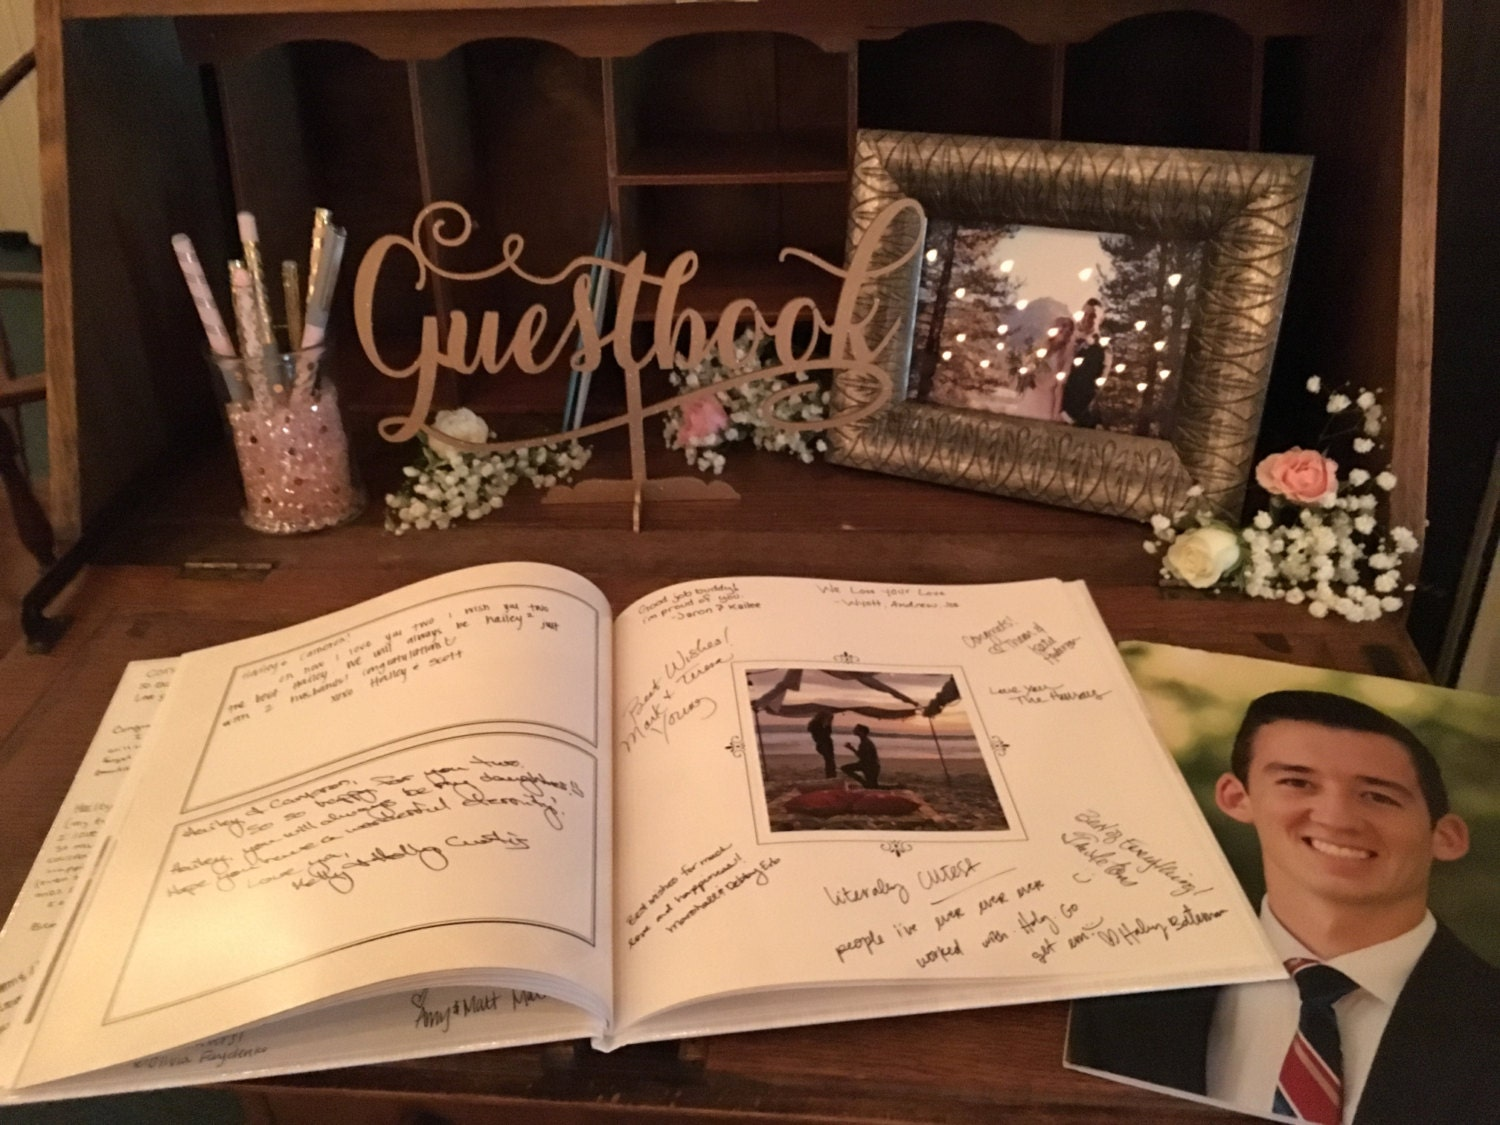 guestbook for wedding reception - Selo.yogawithjo.co